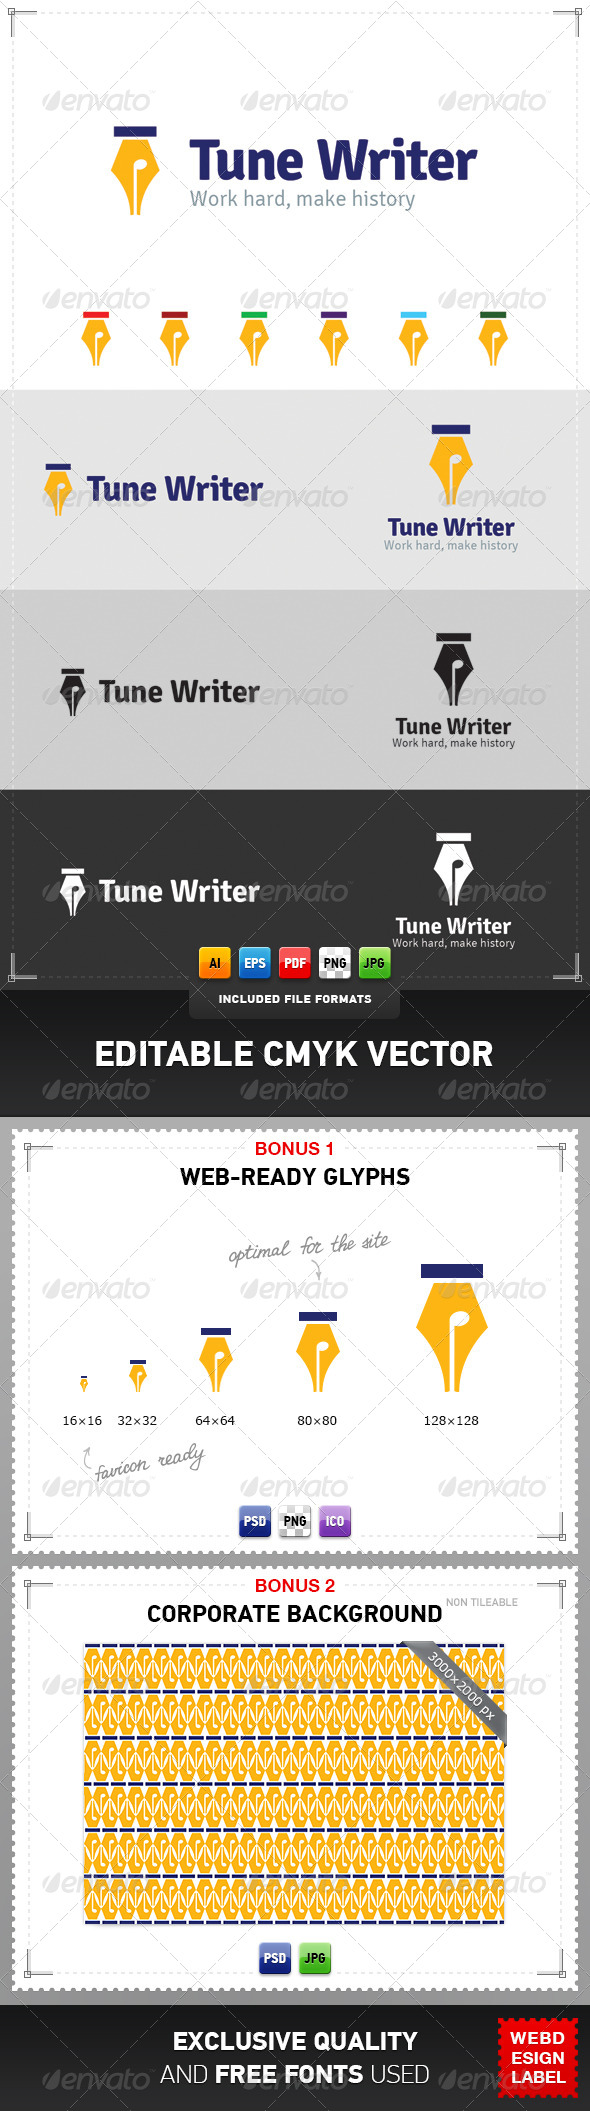 GraphicRiver Tune Writer Logo 4286537